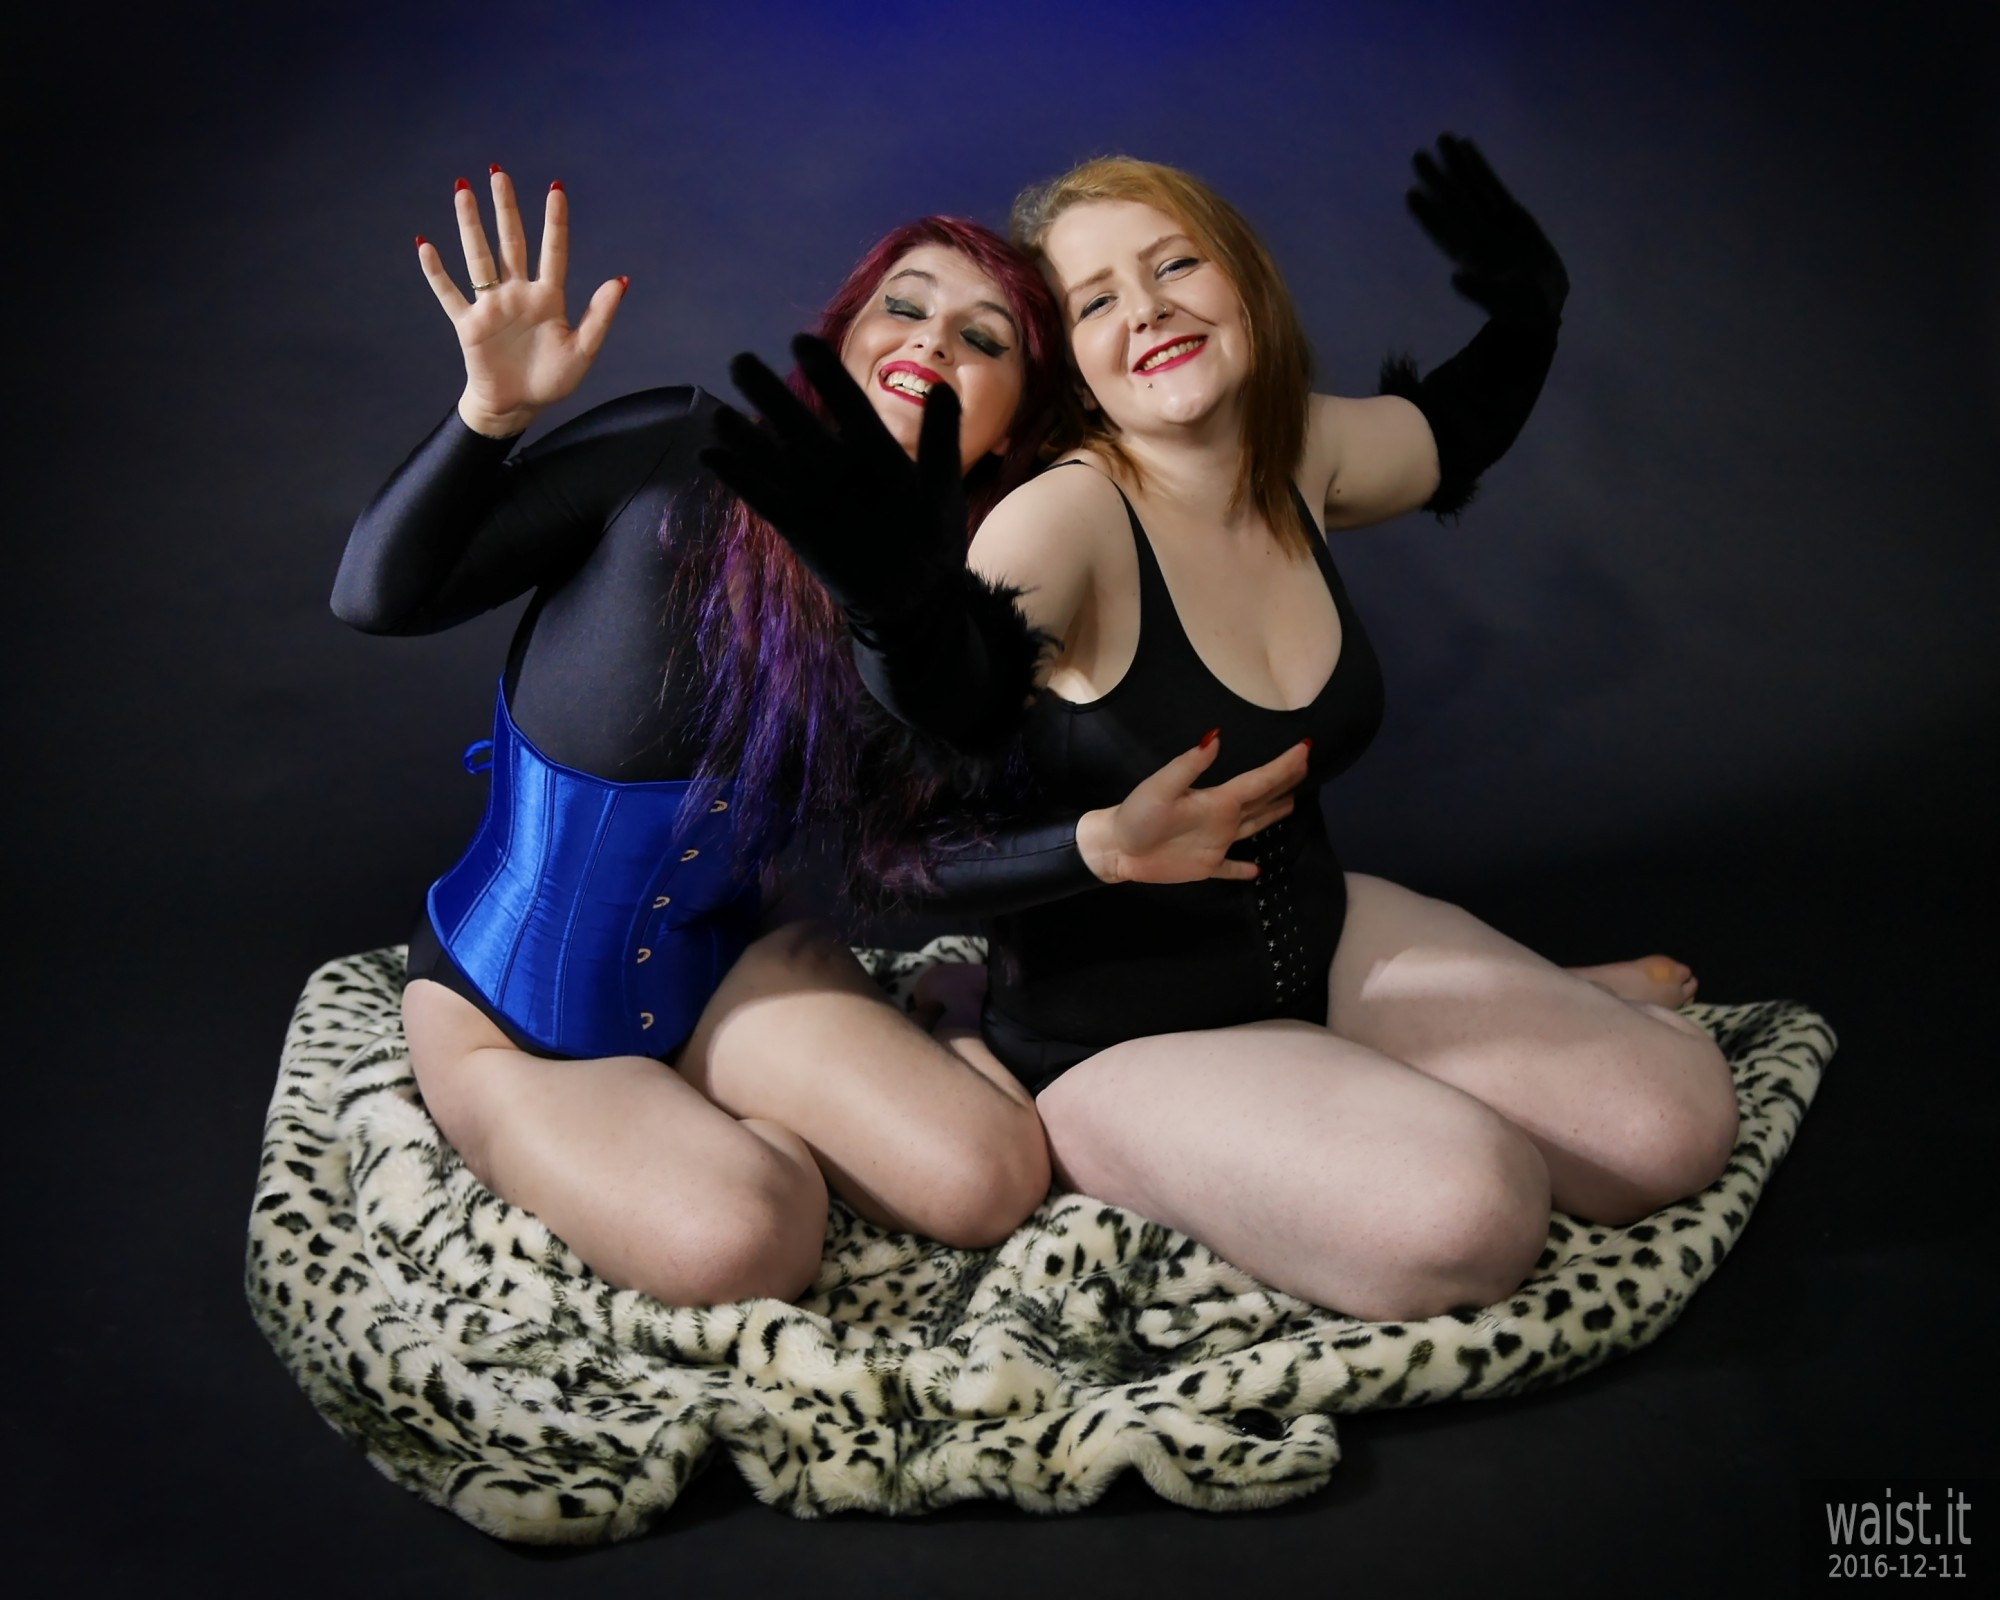 2019-12-11 Miss Danni Lou and her friend Char in corsets